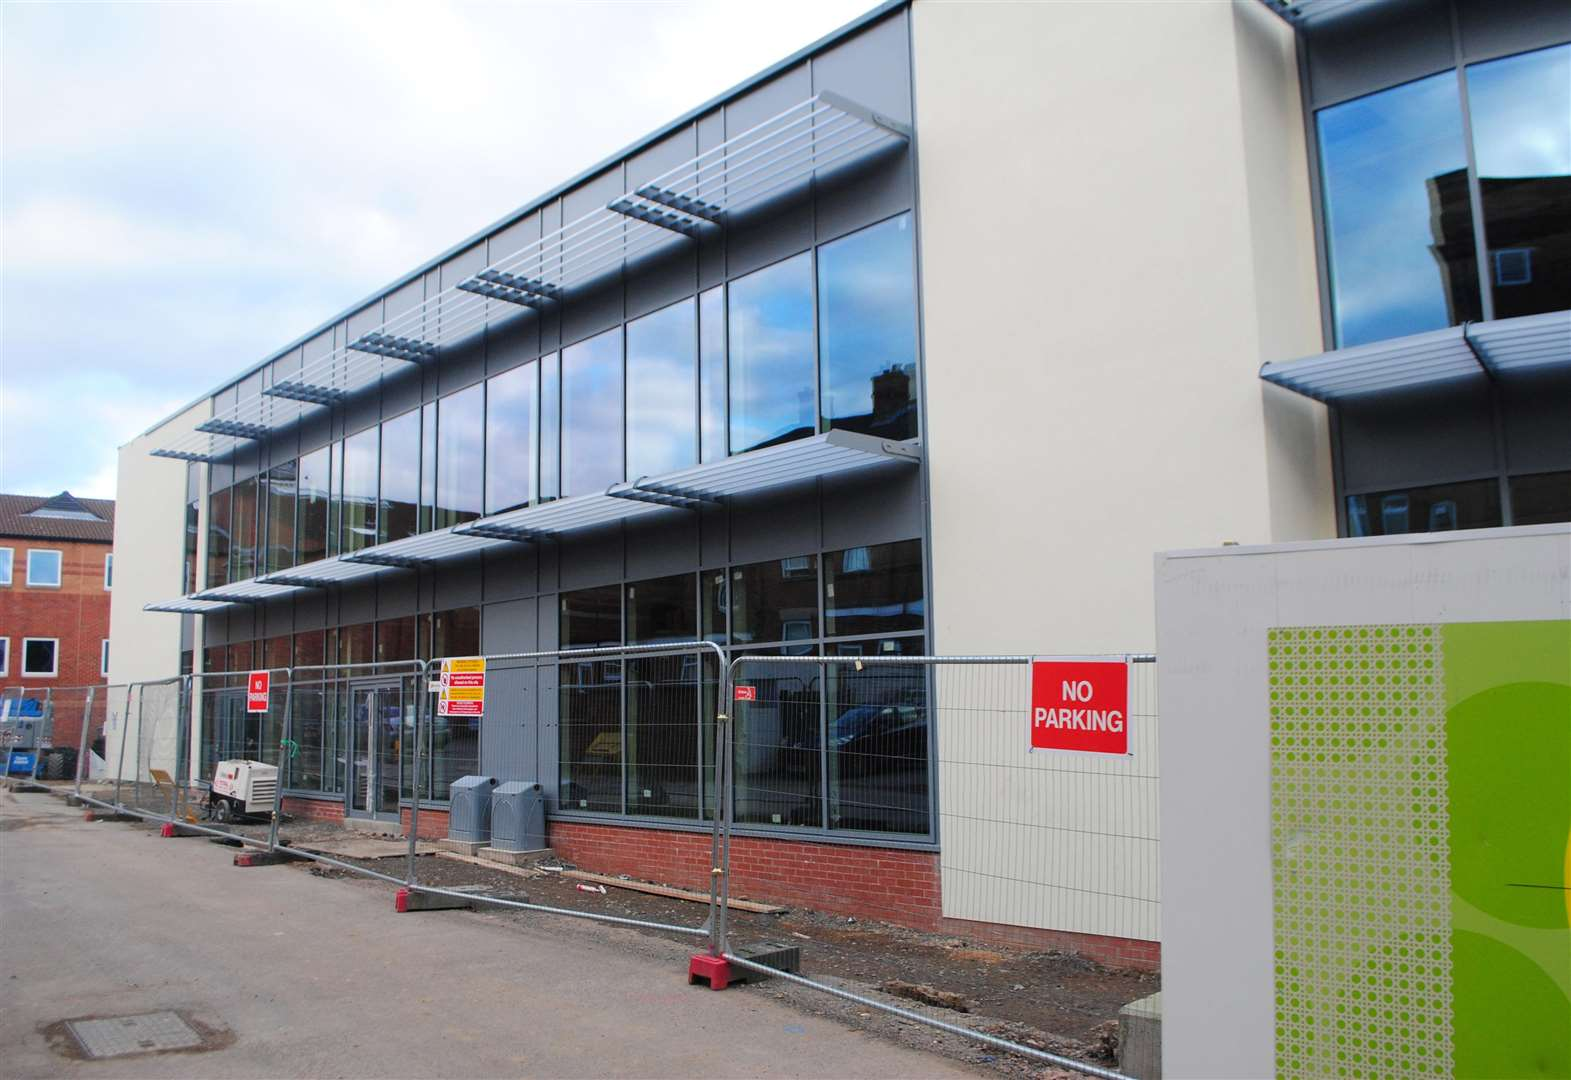 Another delay for opening of Grantham cinema